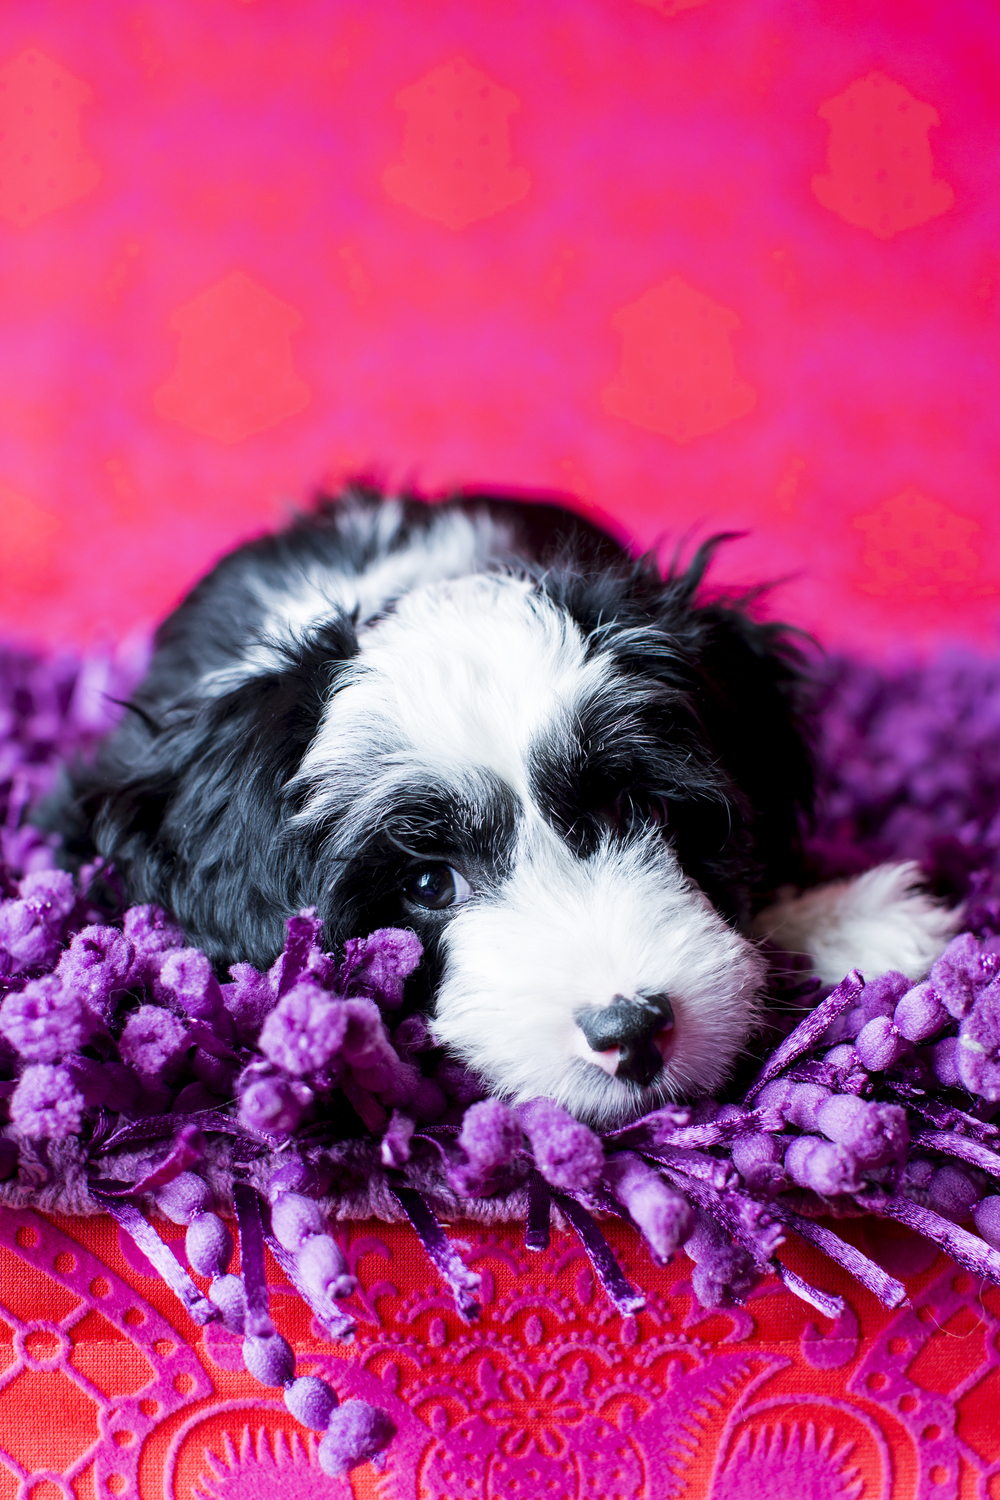 04 White and black puppy studio pet photography session hot pink laying on purple shag rug.jpg